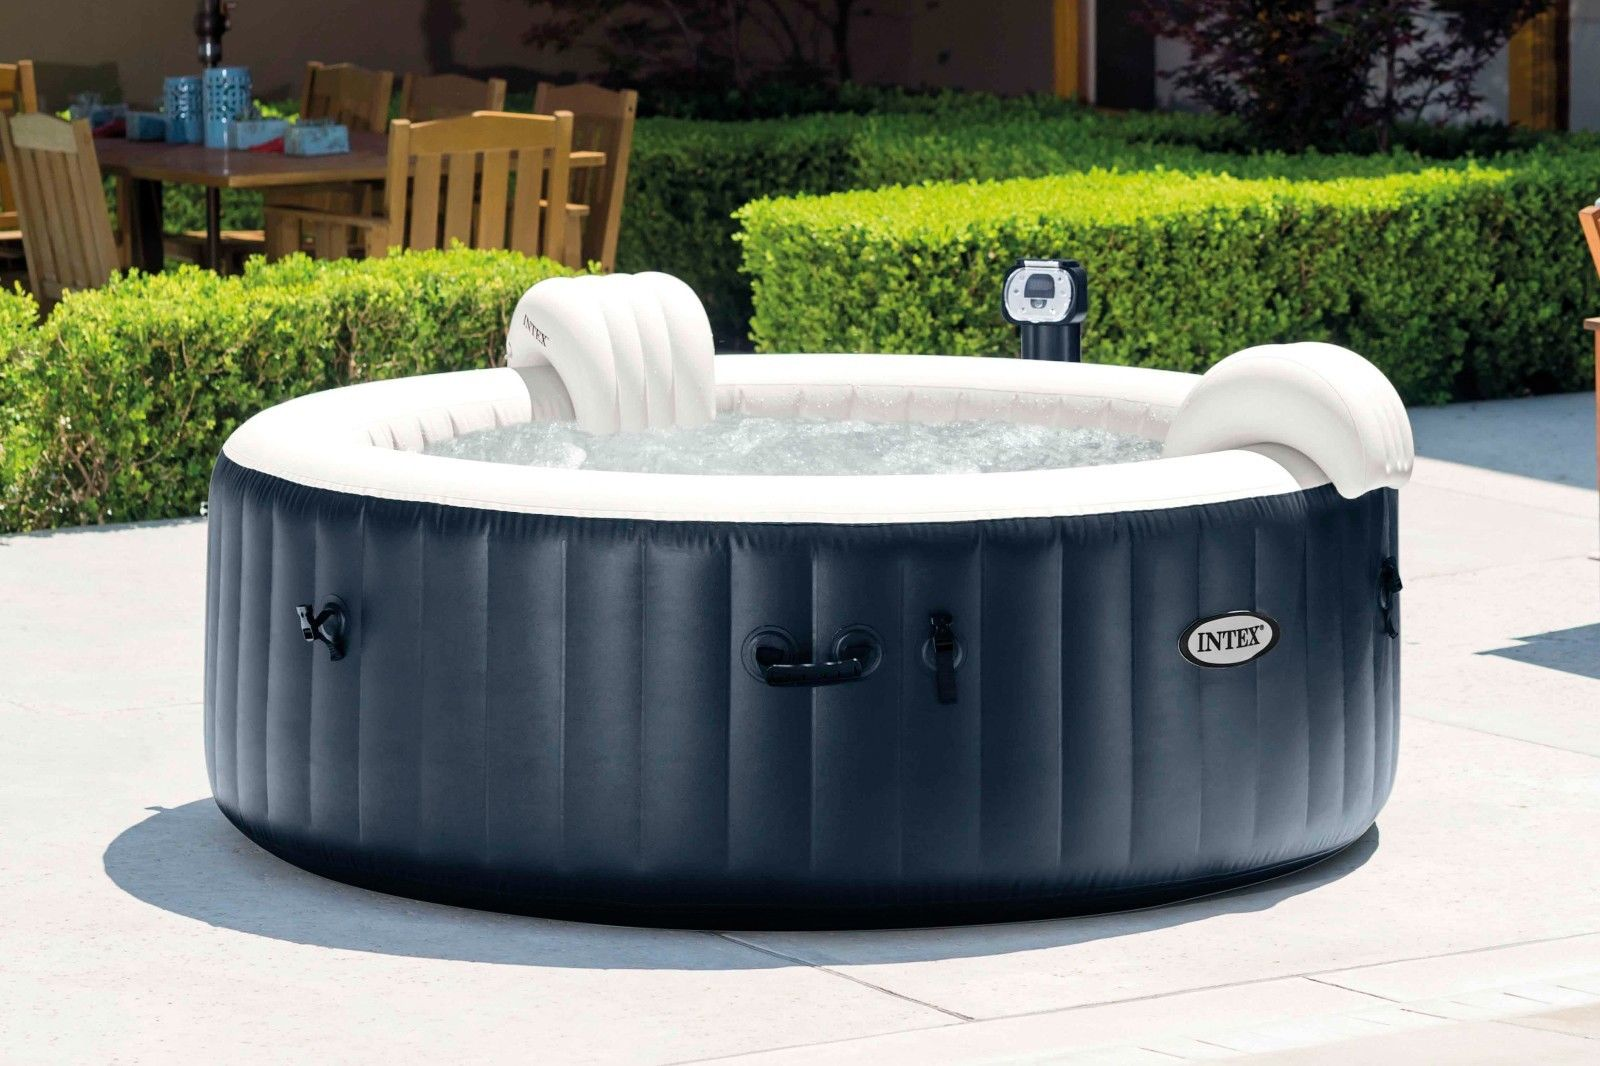 intex pure spa 4 person inflatable portable heated bubble hot tub model 28405e 78257319954 ebay. Black Bedroom Furniture Sets. Home Design Ideas